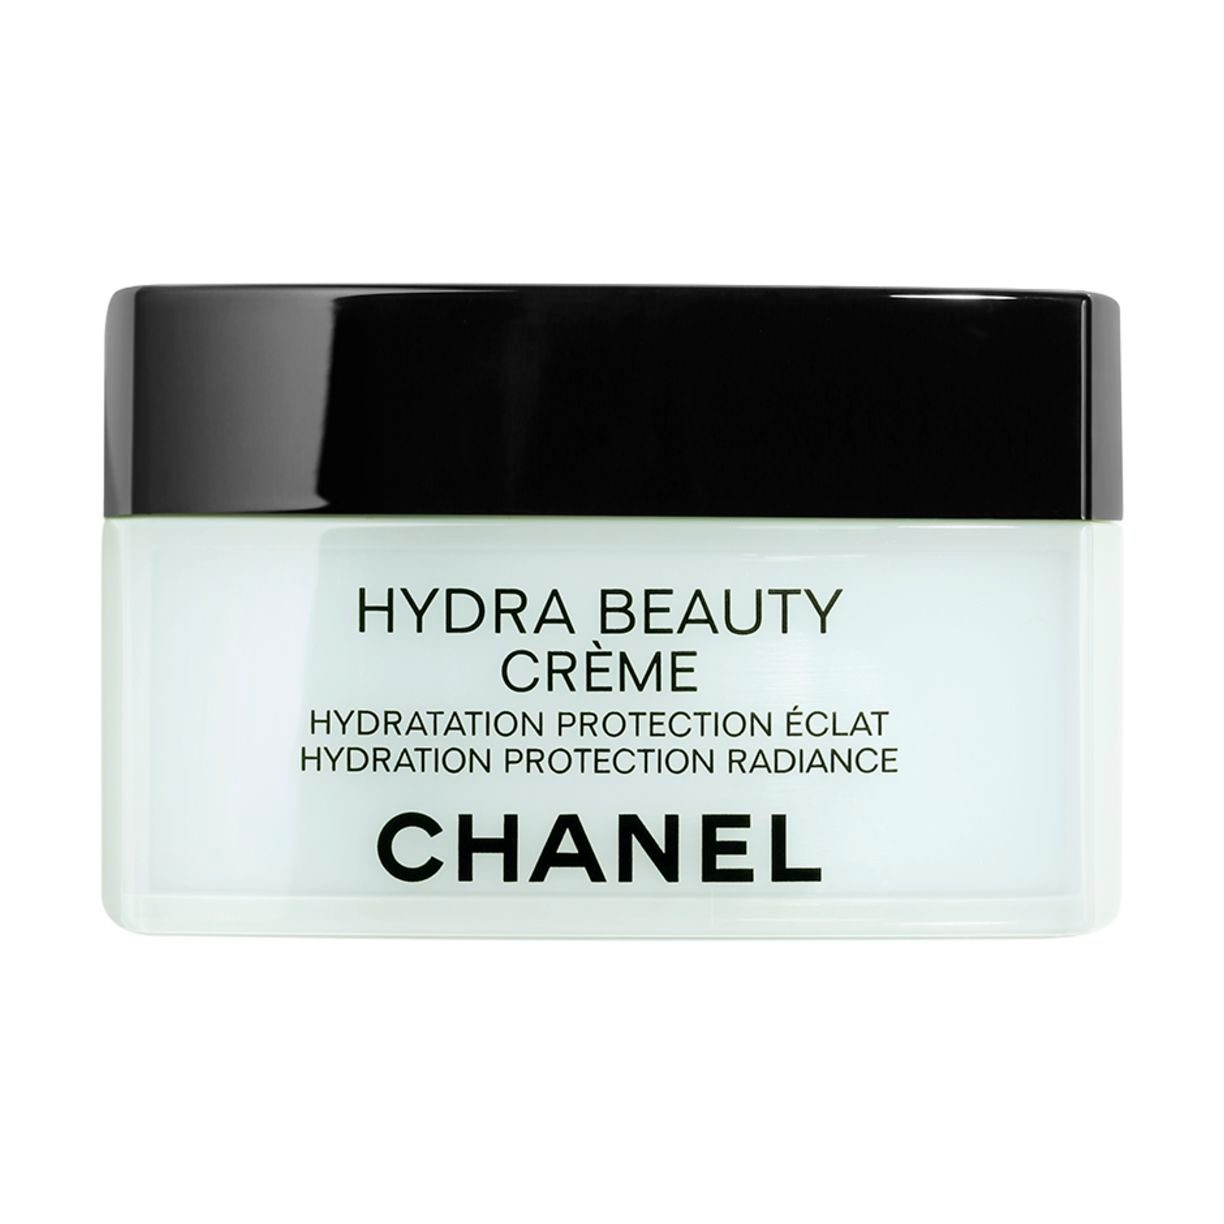 HYDRA BEAUTY CRÈME HYDRATION PROTECTION RADIANCE JAR 50G